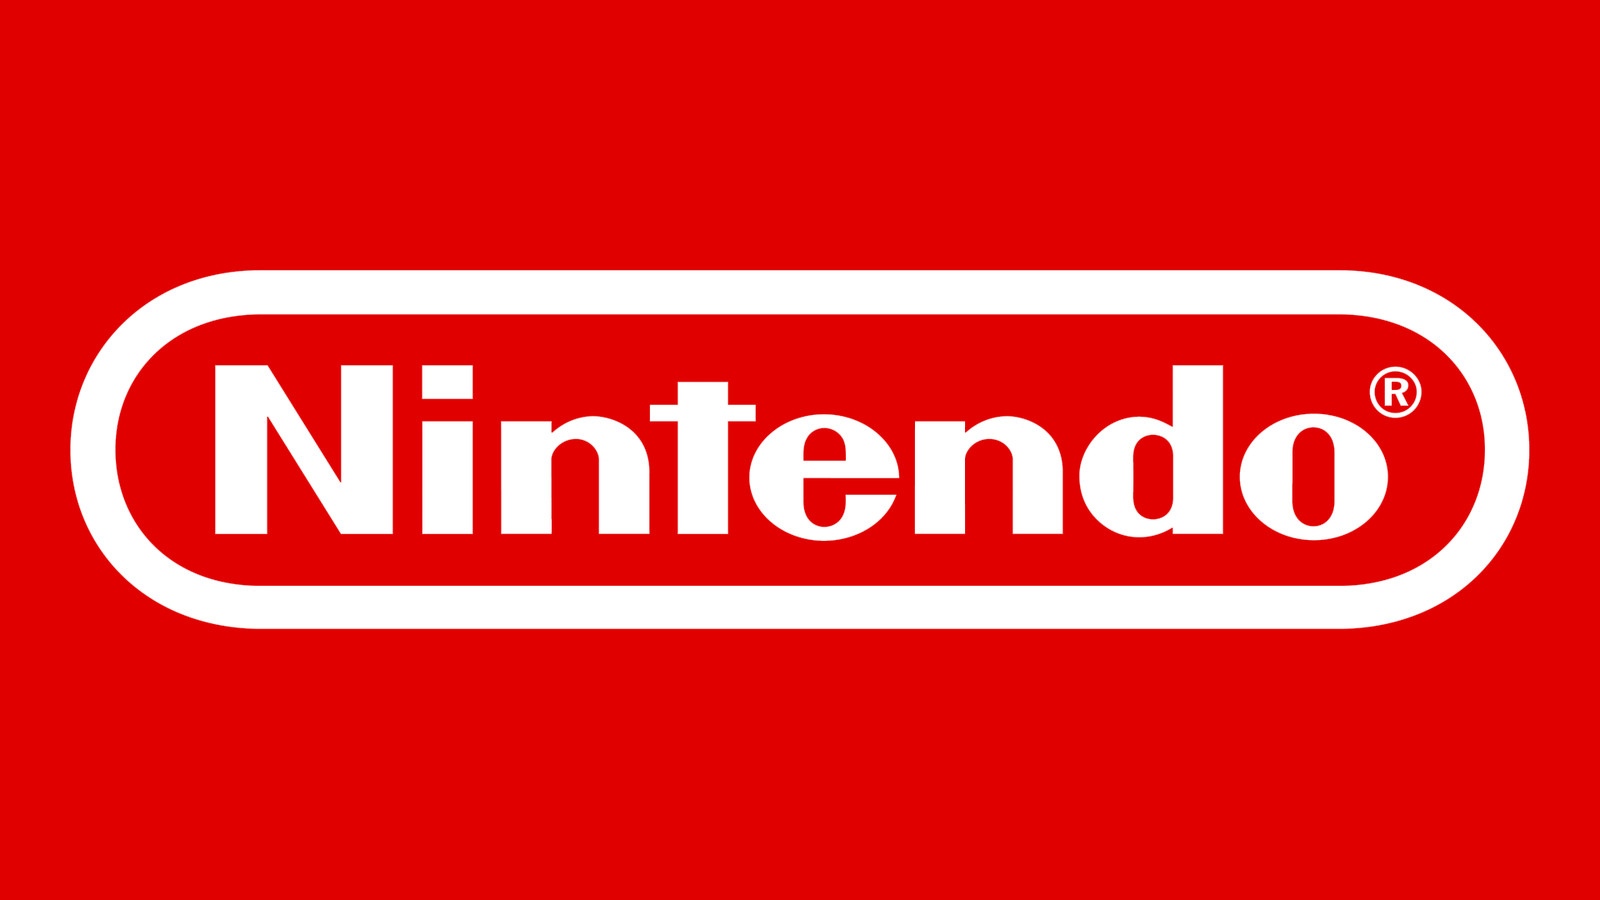 US: Nintendo is No.3 for TV advertising impressions in January 2021